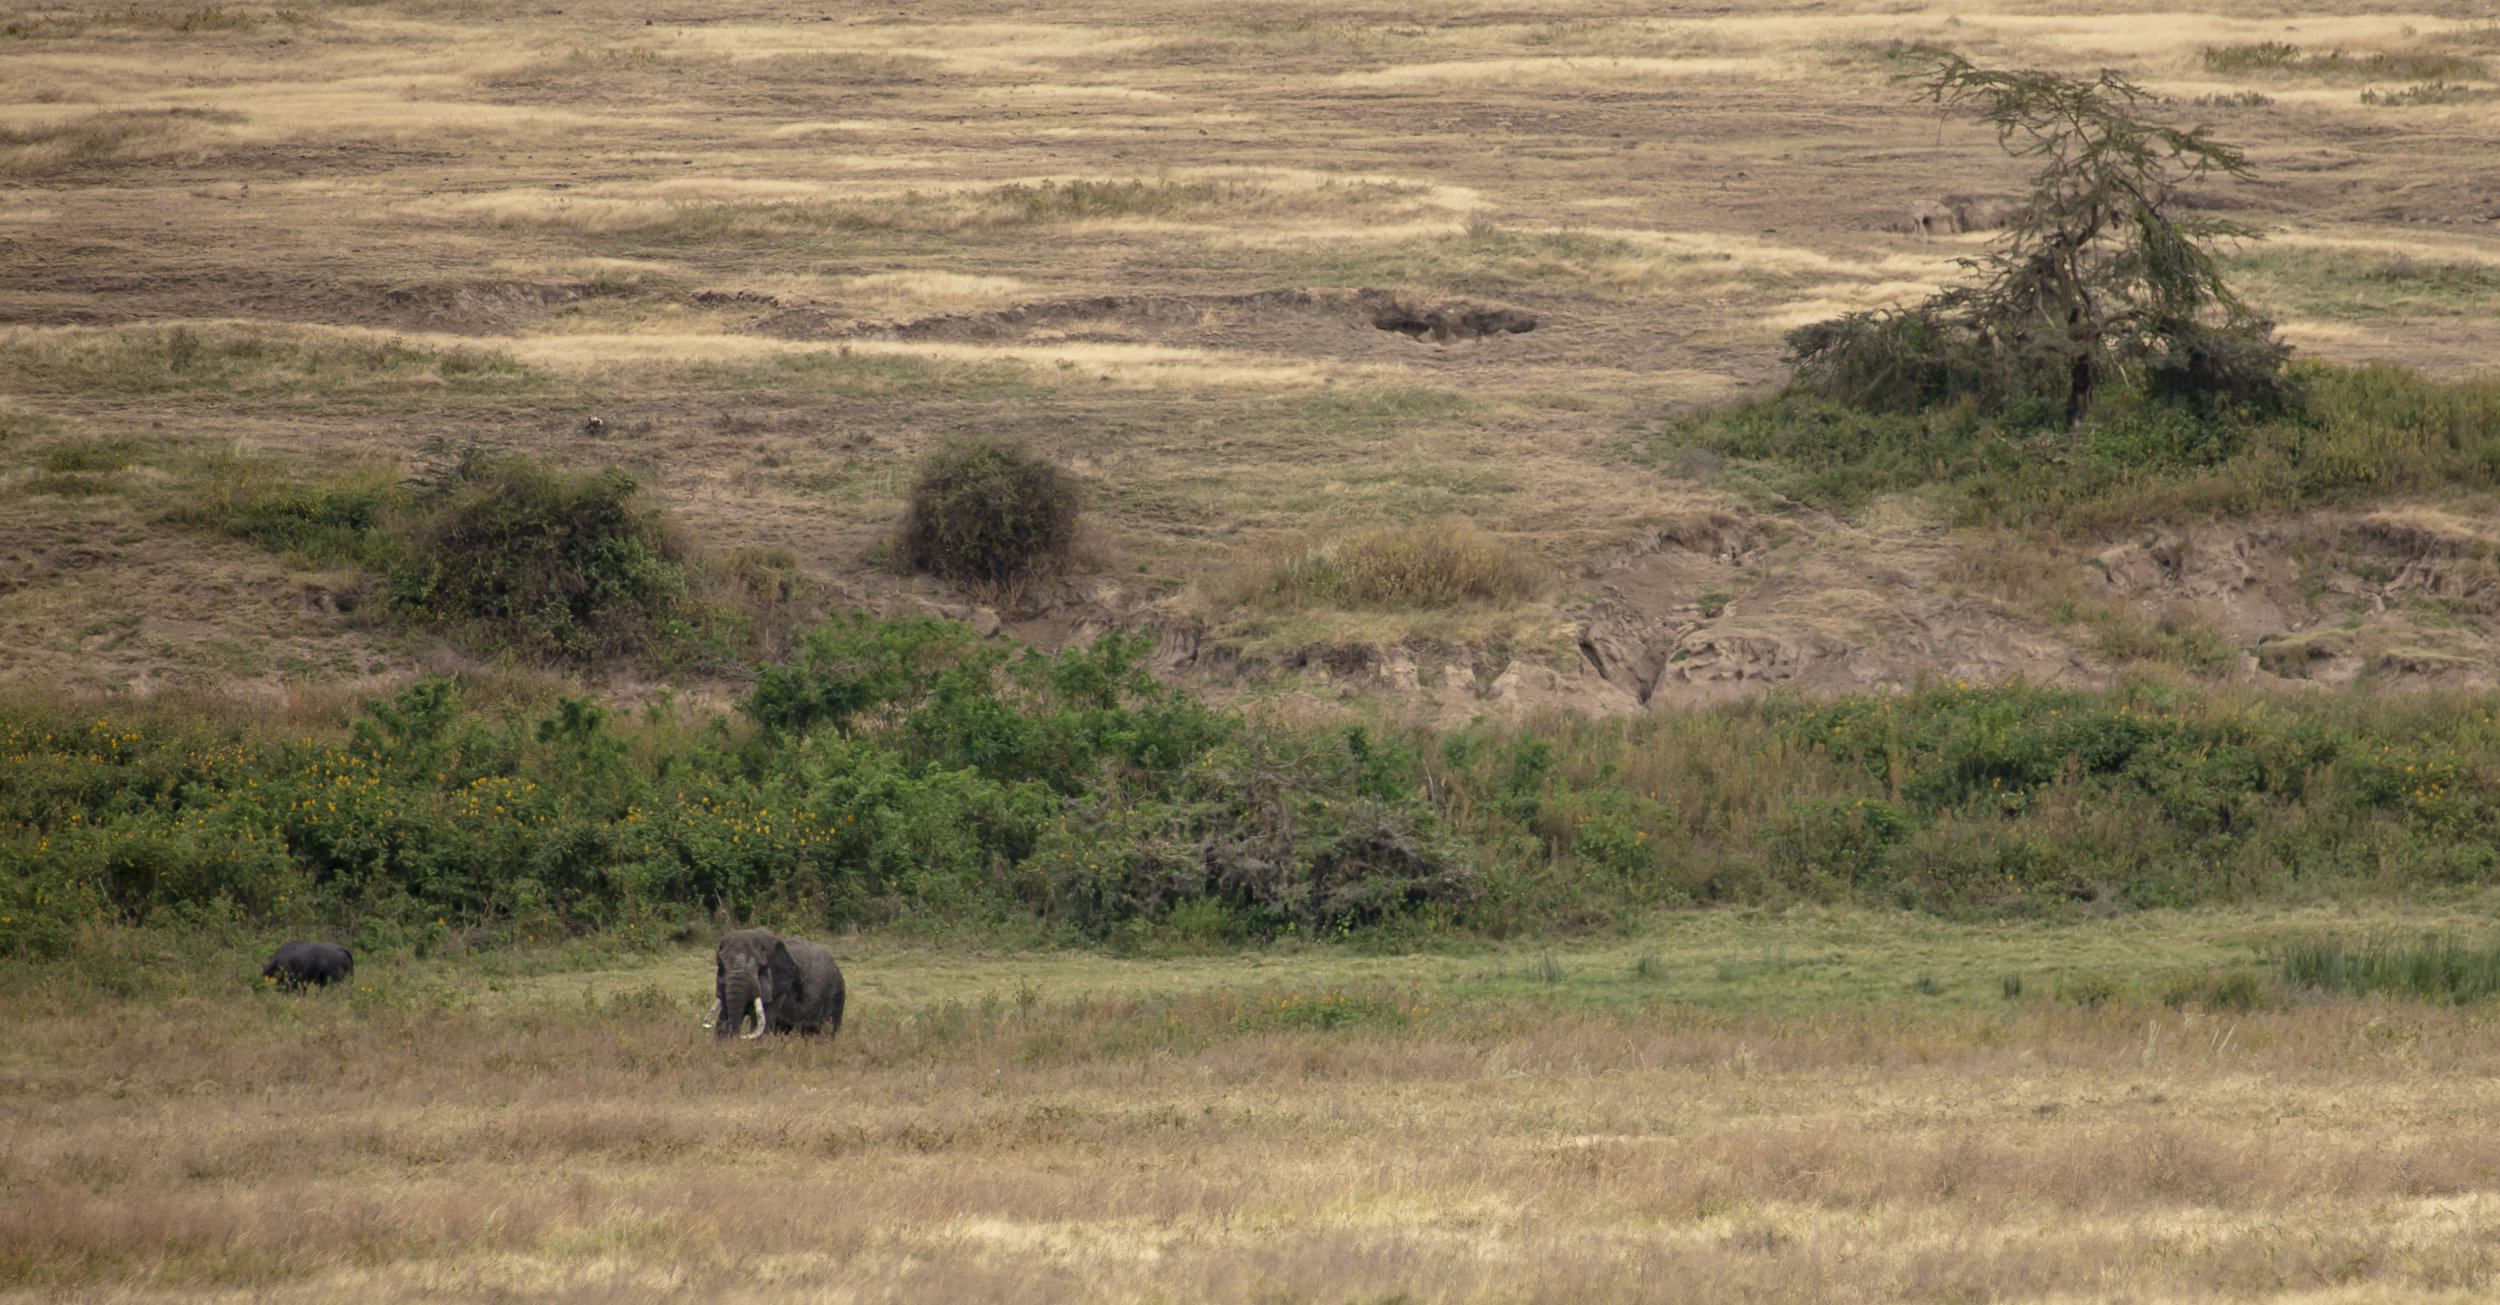 African Adventure - 31 July '18 - Ngorongoro (Crater) Conservation Area to Meserani, Tanzania - 049.JPG